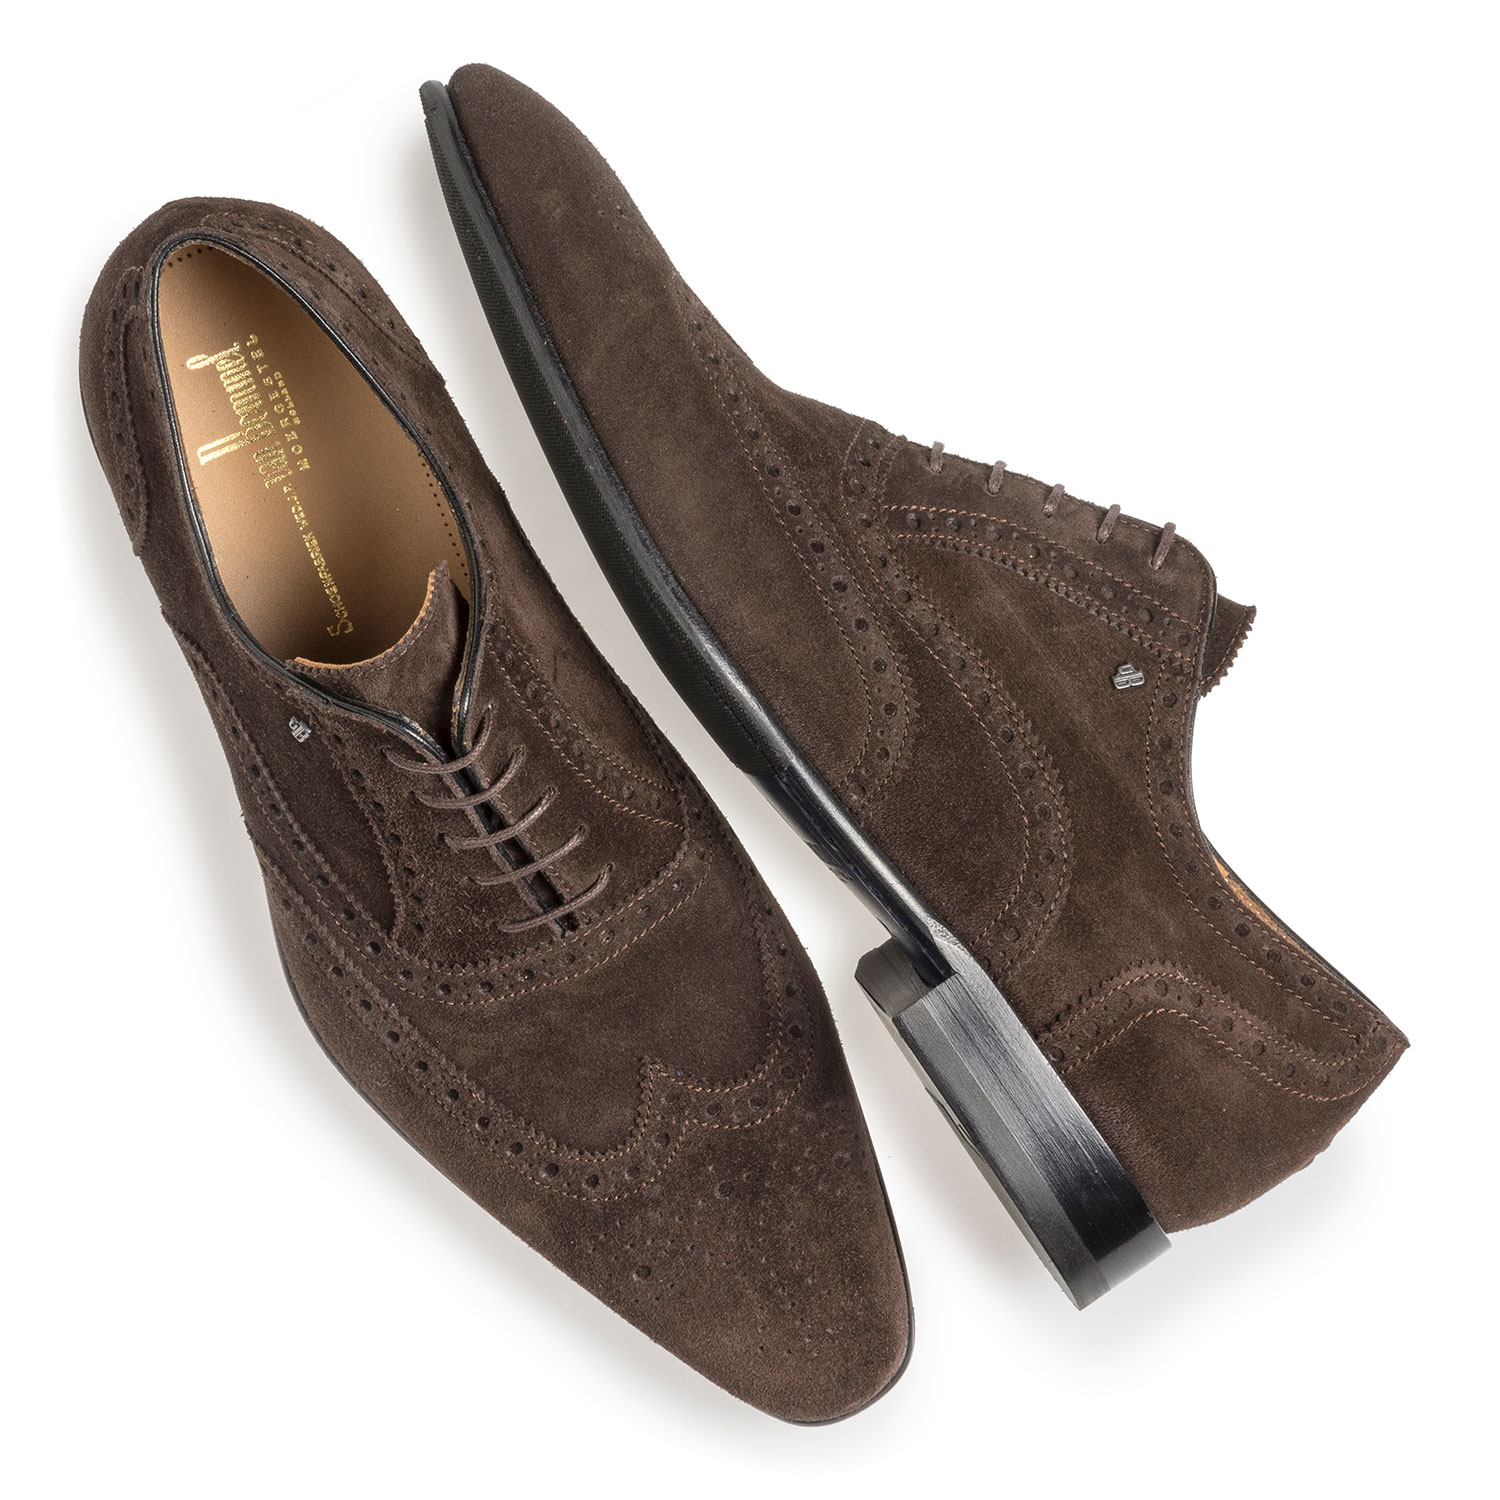 19295/01 - Dark brown suede leather brogue